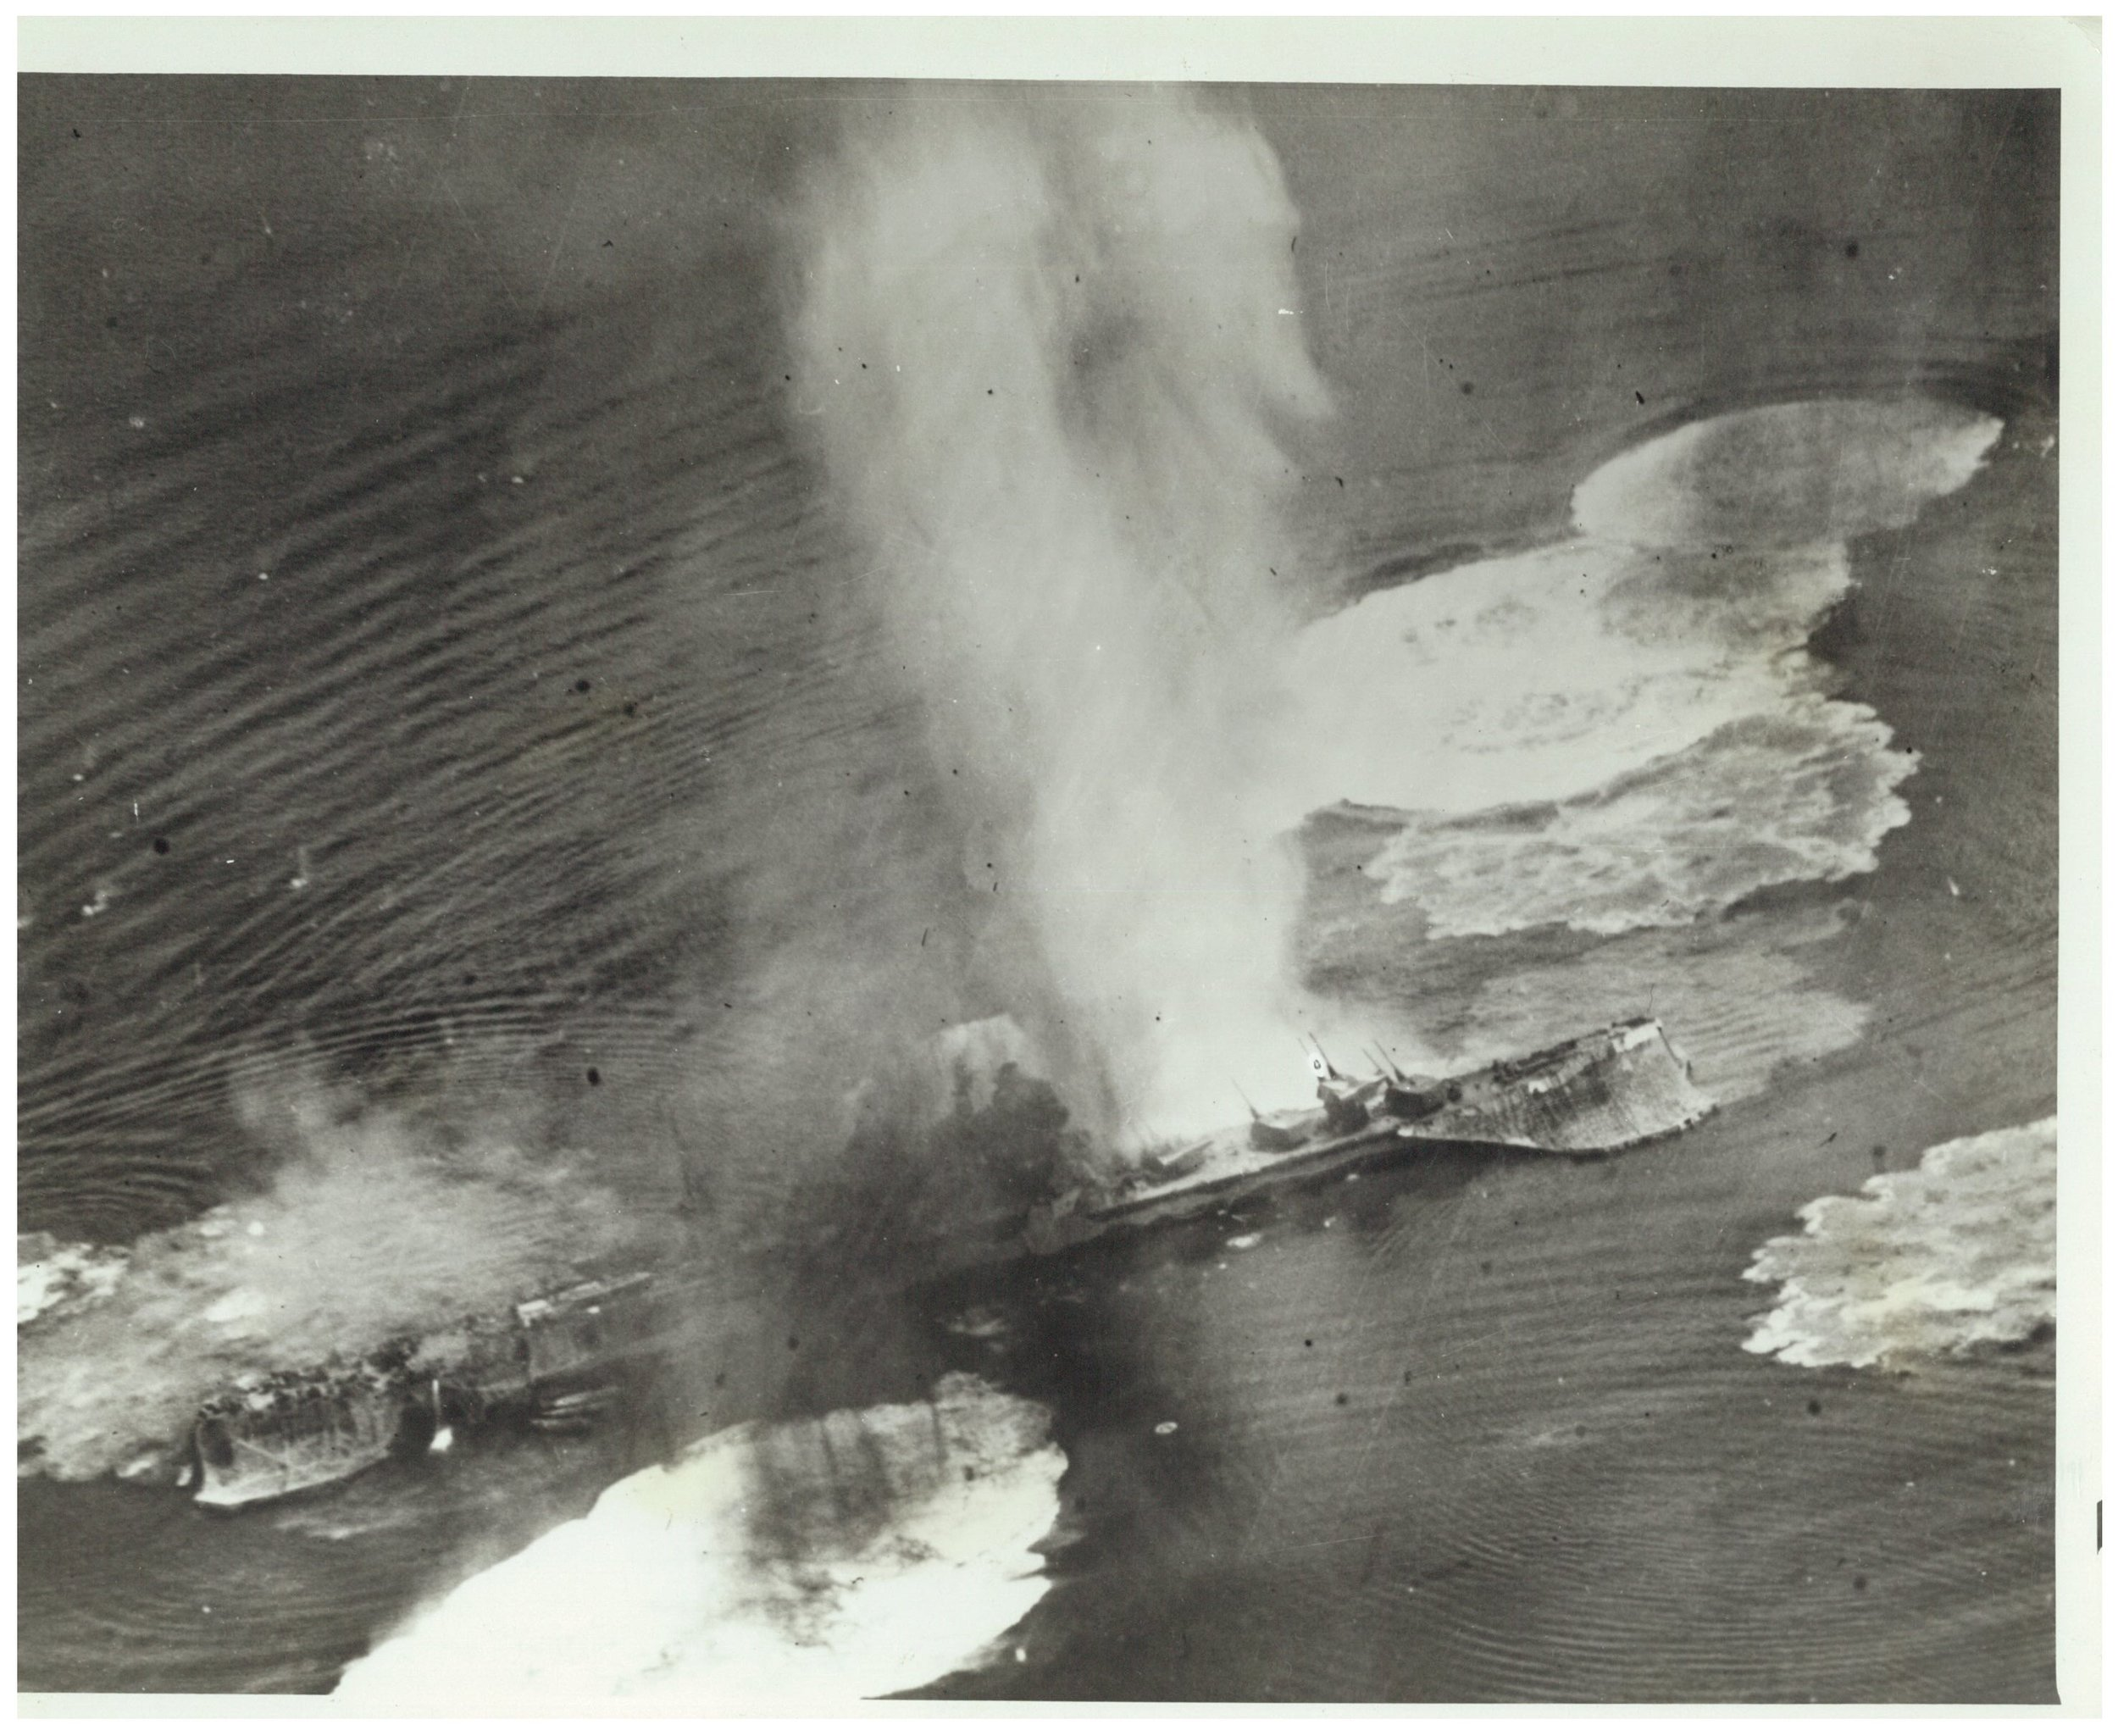 "The heavy cruiser   Tone   ,  on 24 July 1945. Raymond Porter and Normand Brissette were brought down while bombing the  Tone  on 28 July. Having flown into a horrific ""box"" of flak, at least one of the B-24 planes in the 6th Squadron of the 494th USAAF attack of 28 July reported that they diverted from their bomb run on the  Haruna  and instead attacked the  Tone  (viz. correspondence to Emil Turek from Van Curen, courtesy Barbara English, Turek's daughter)."